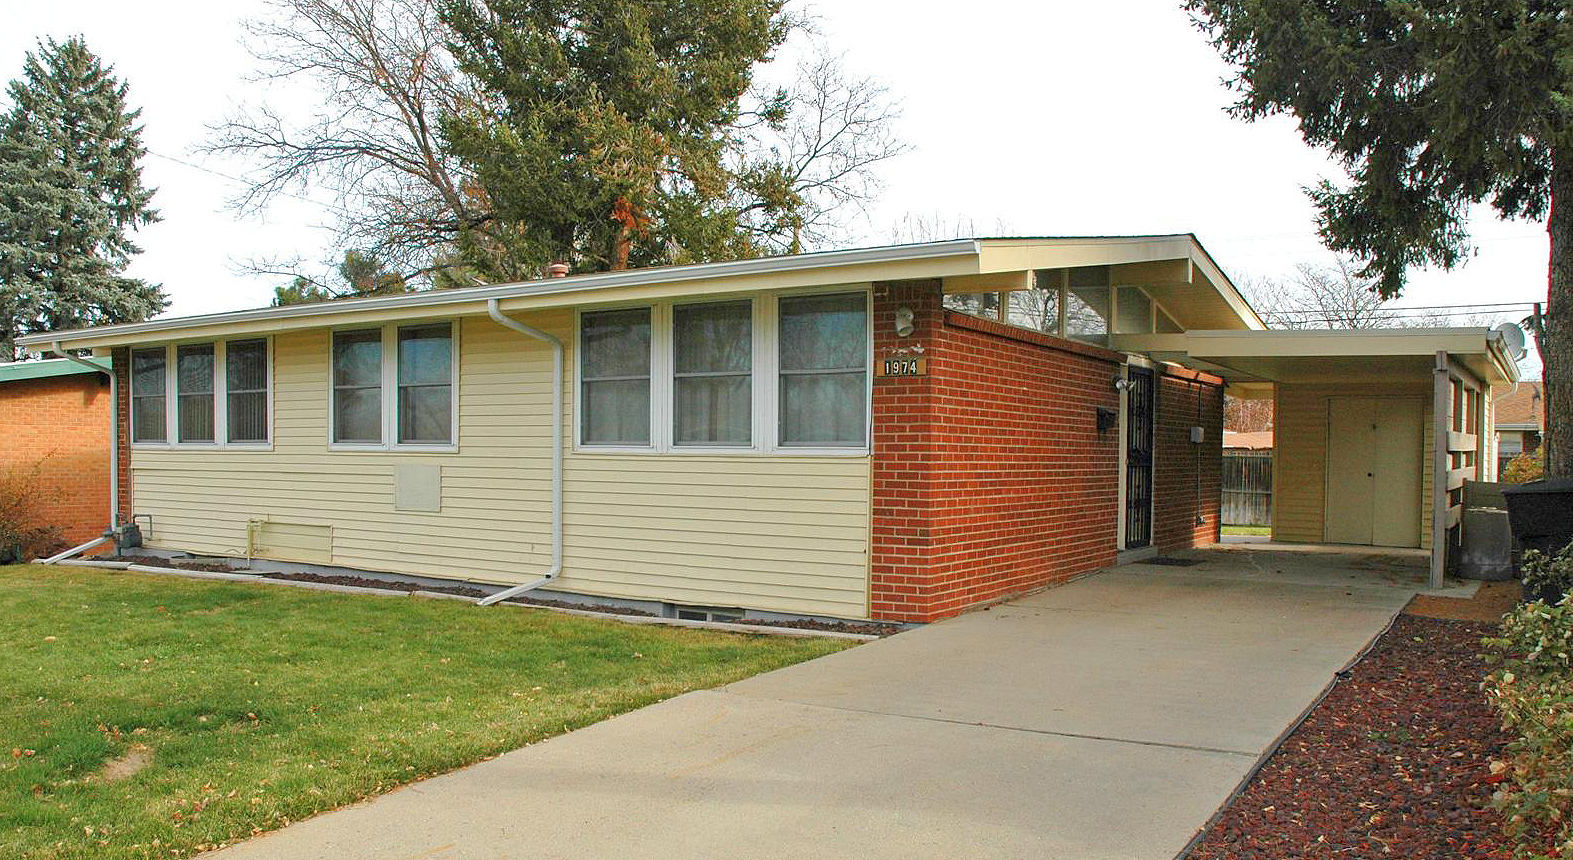 Affordable Mid Century Modern Under 225k: century home builders